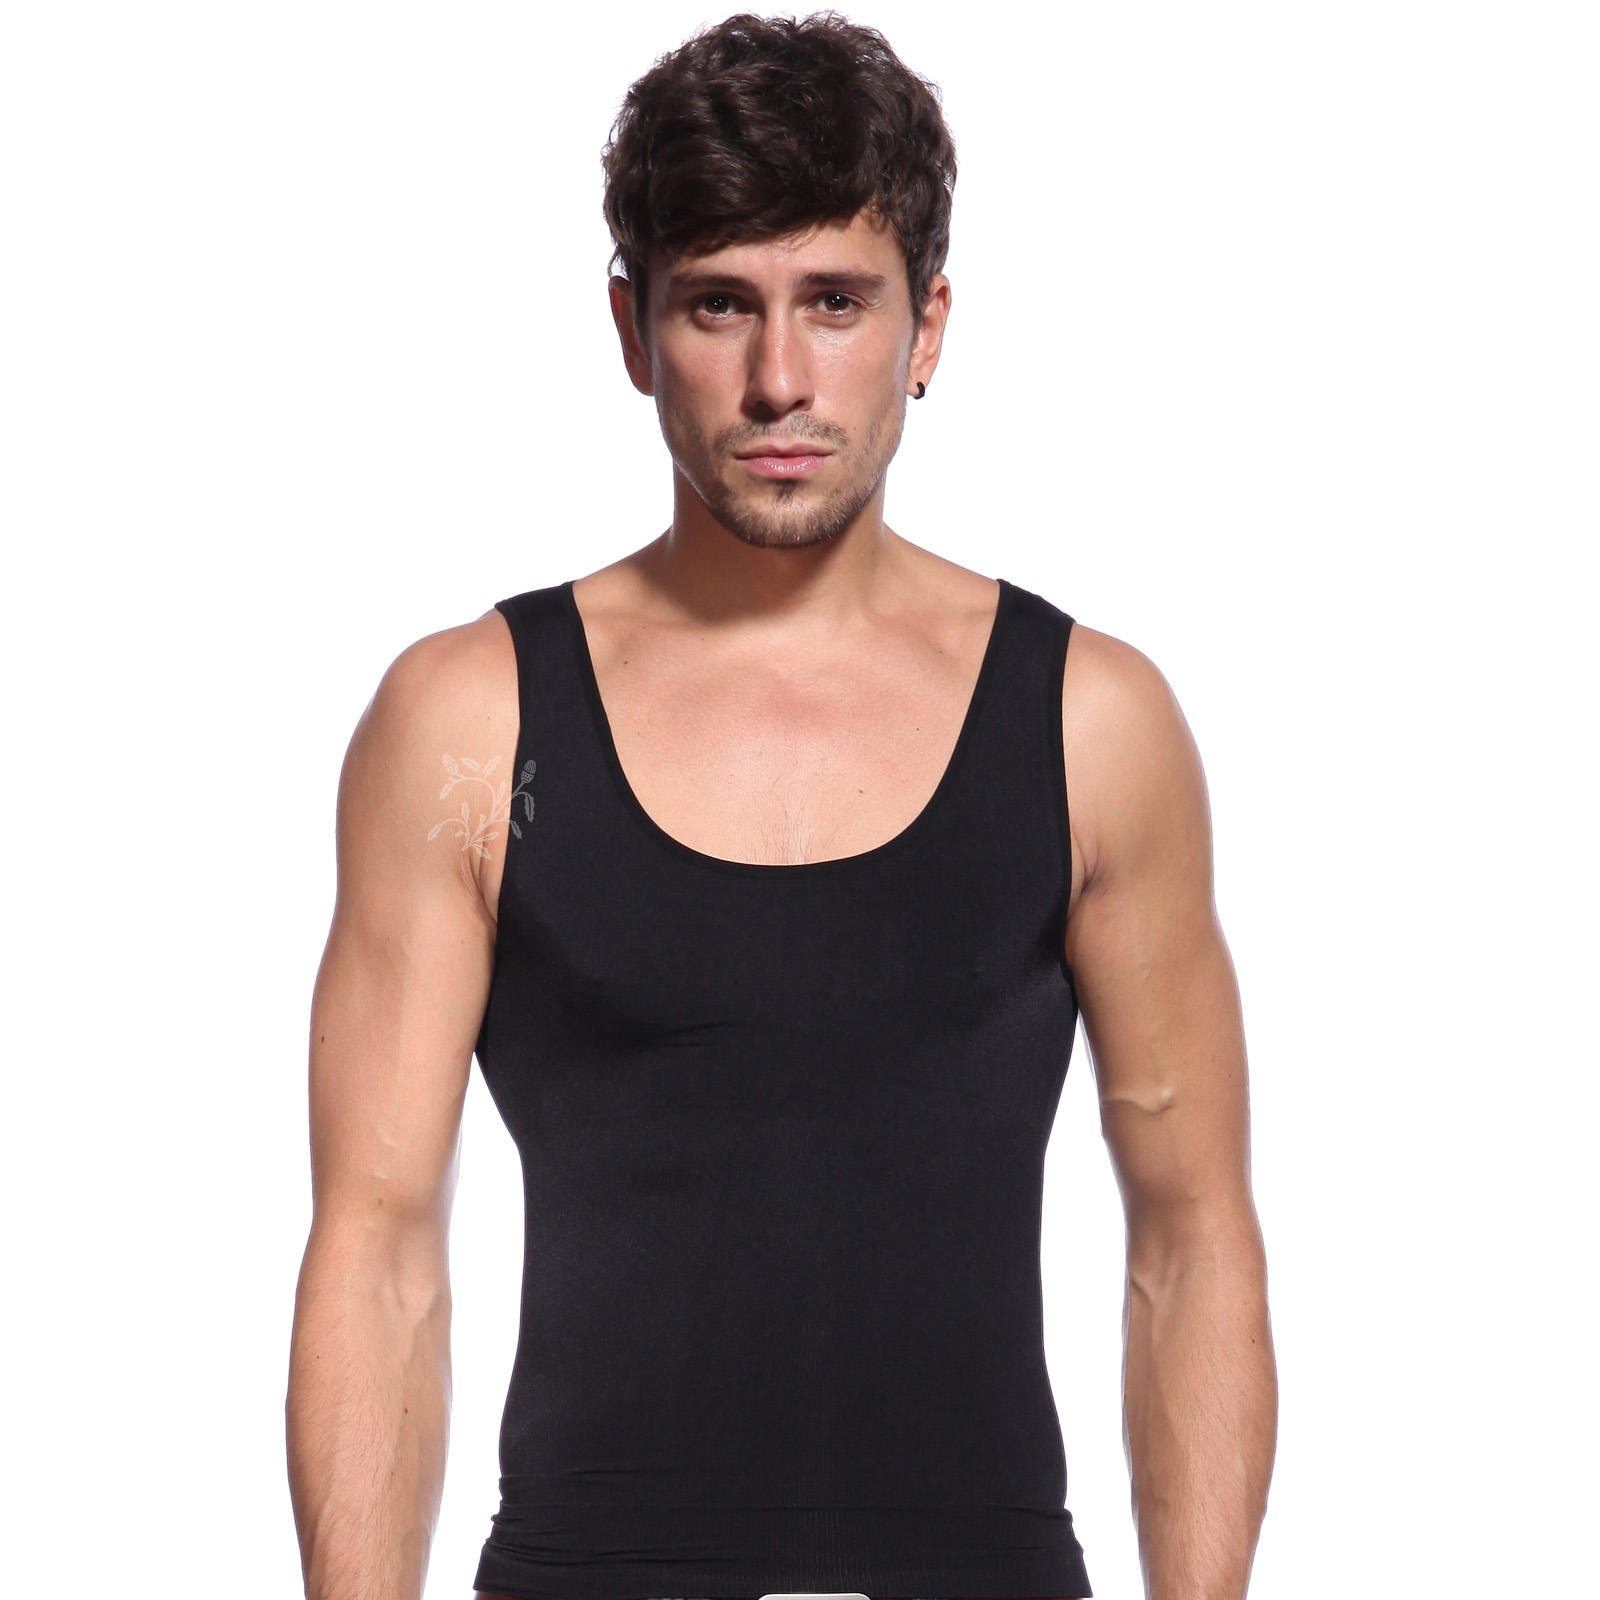 herren shapewear unterhemd bauchweg shirt m nner. Black Bedroom Furniture Sets. Home Design Ideas